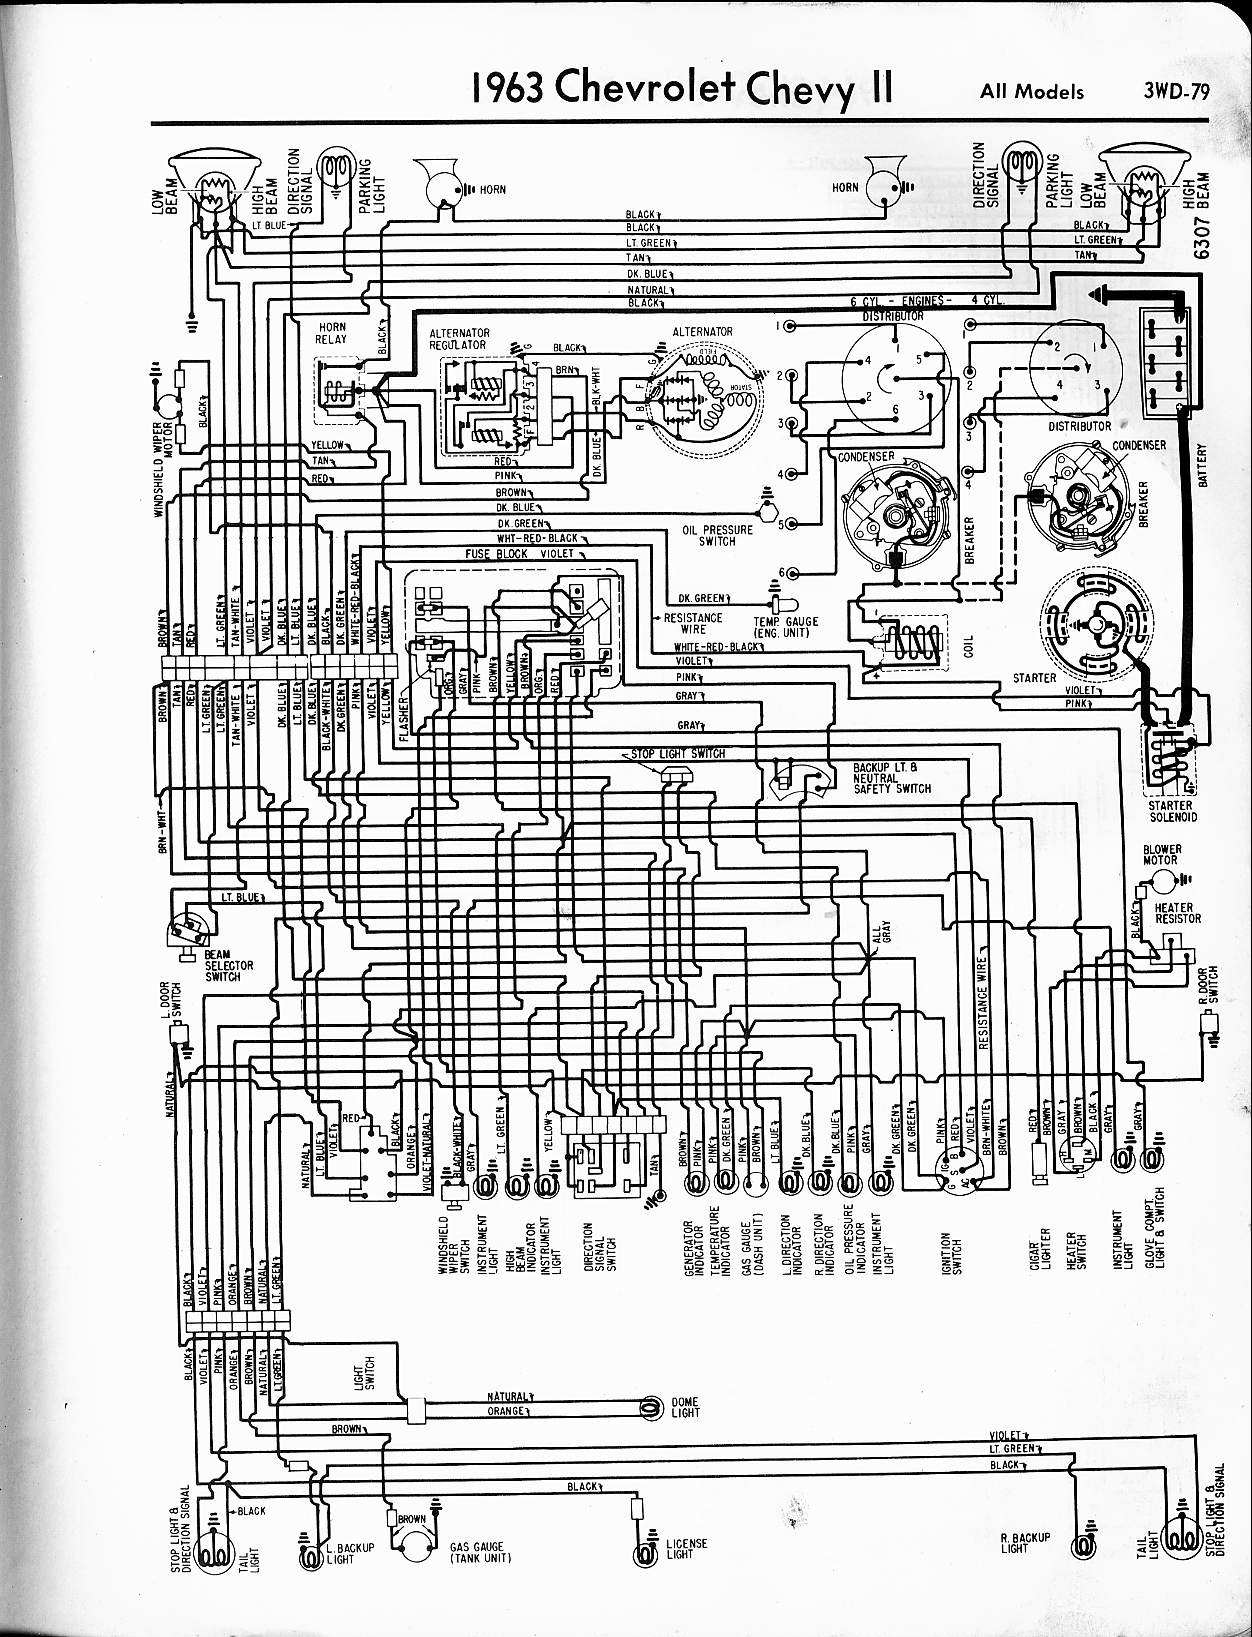 MWireChev63_3WD 079 57 65 chevy wiring diagrams 1970 chevelle dash wiring diagram at suagrazia.org